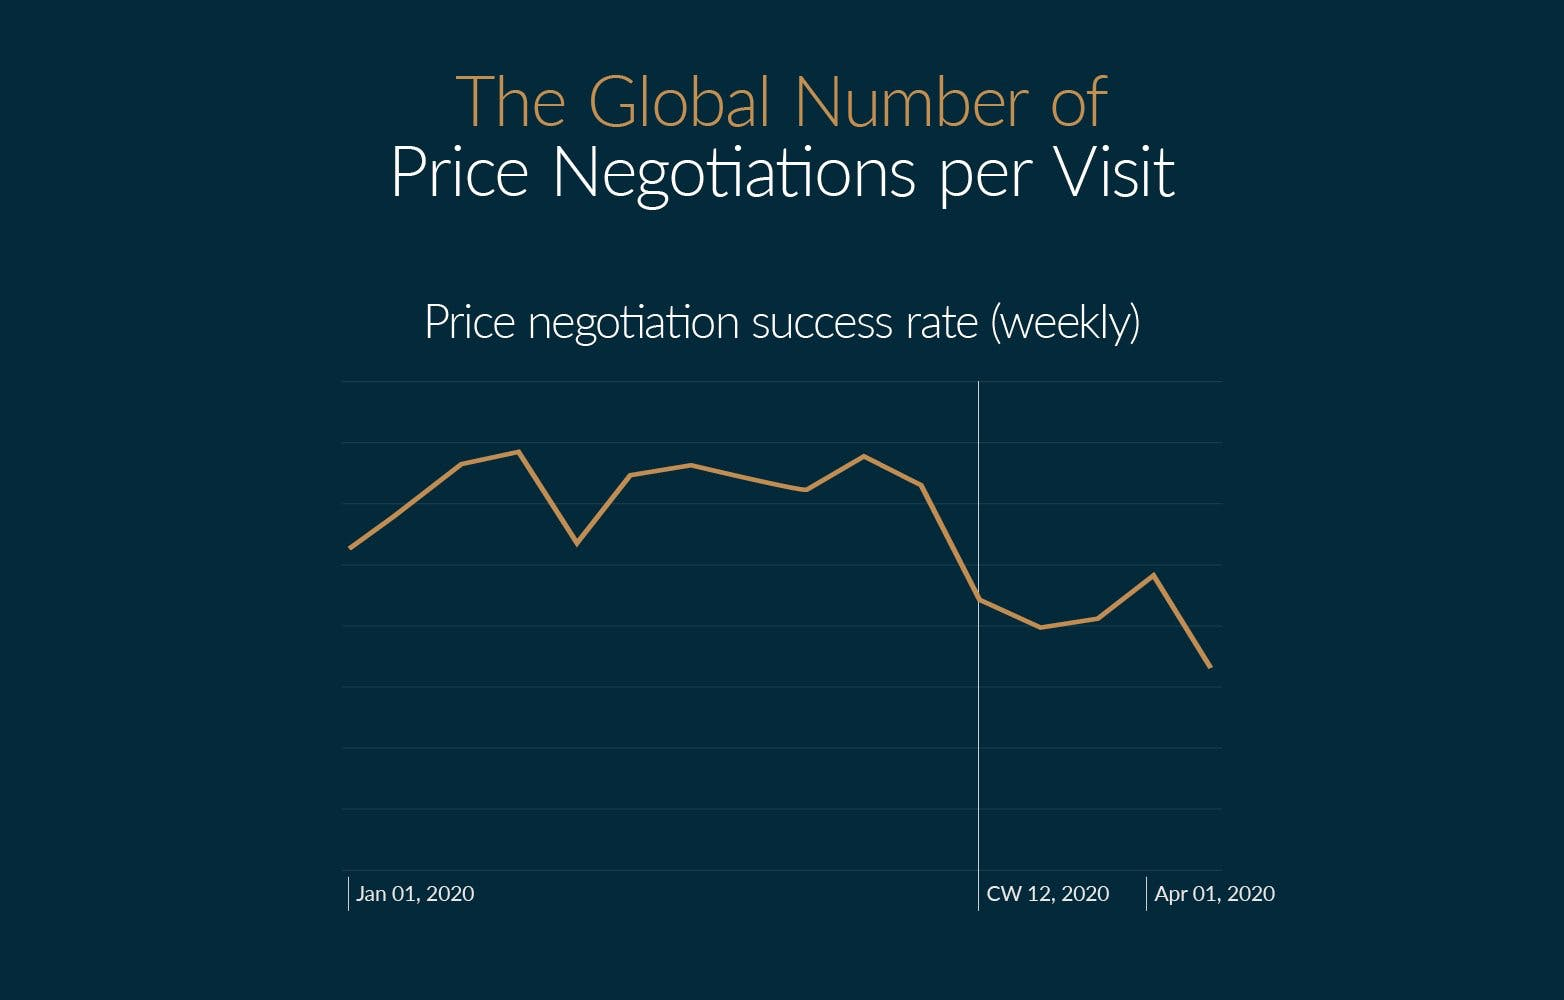 Median discount percentage requested vs. Price negotiation success rate